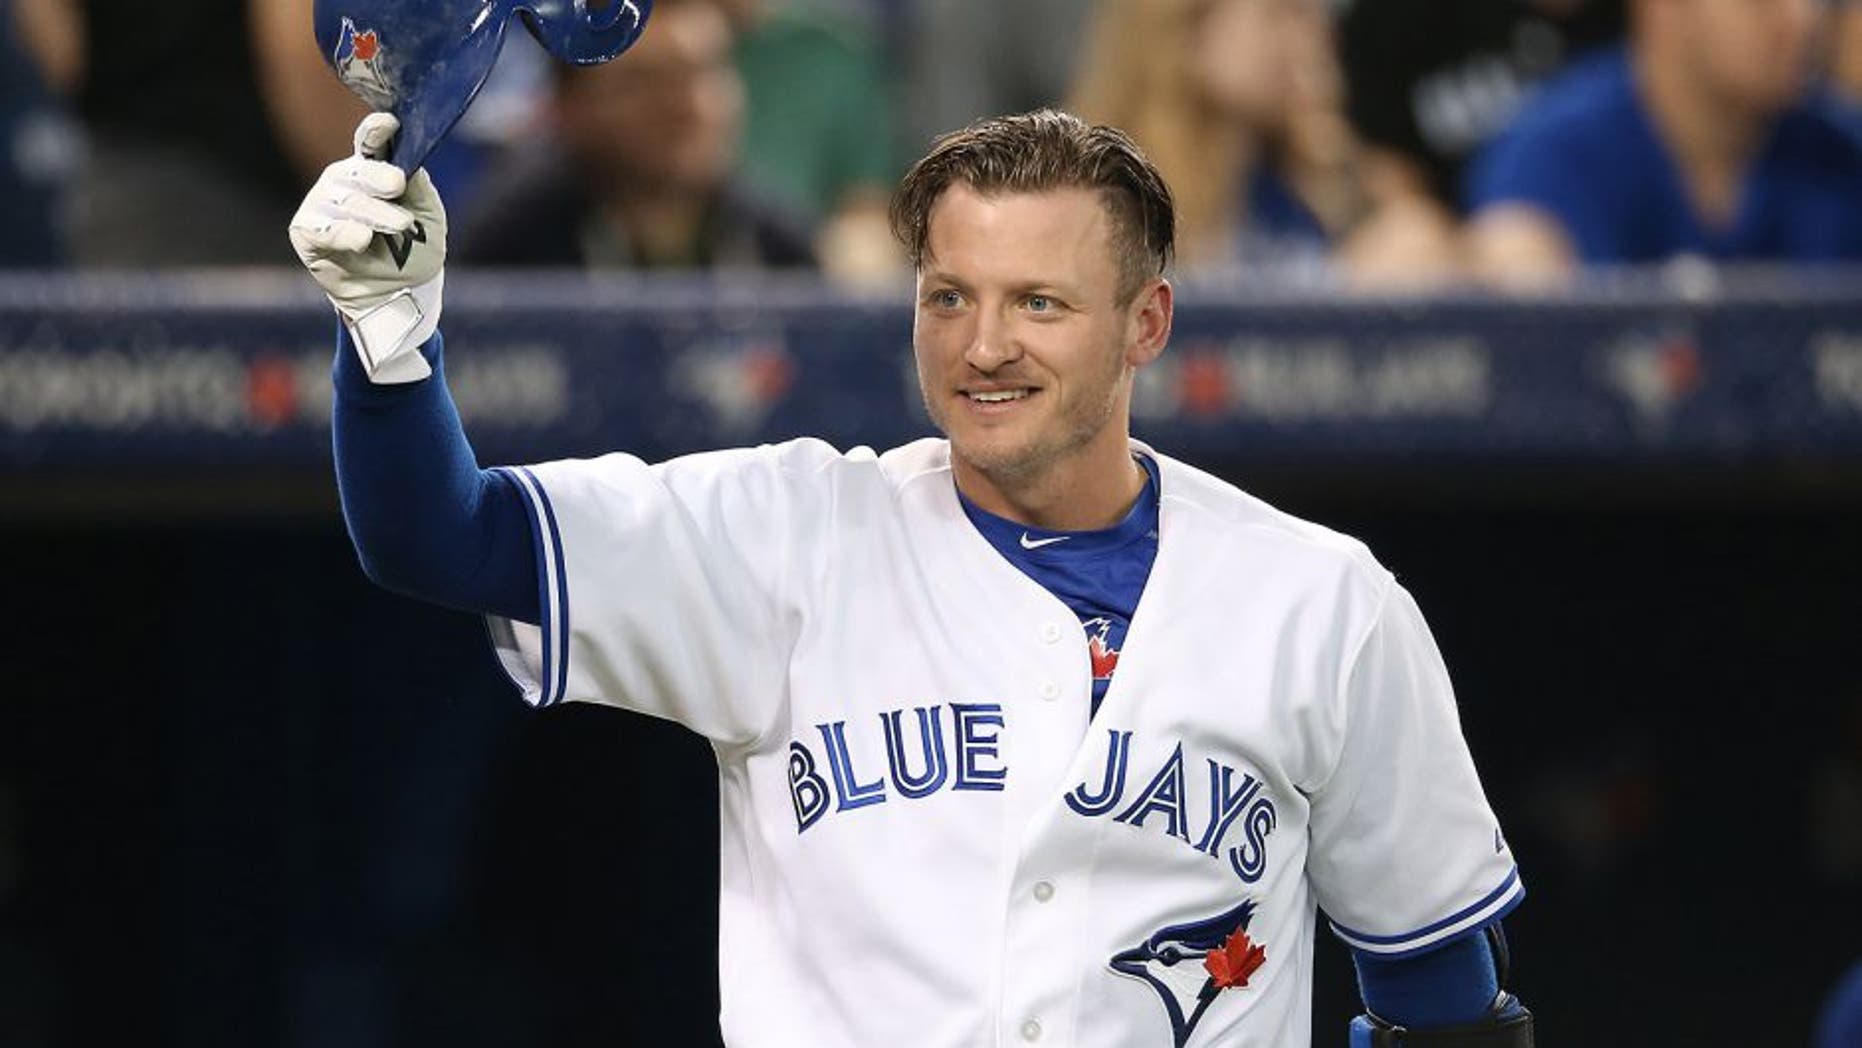 TORONTO, CANADA - JUNE 8: Josh Donaldson #20 of the Toronto Blue Jays greets a member of the Miami Marlins as he tips his helmet during MLB game action against the Miami Marlins on June 8, 2015 at Rogers Centre in Toronto, Ontario, Canada. (Photo by Tom Szczerbowski/Getty Images)